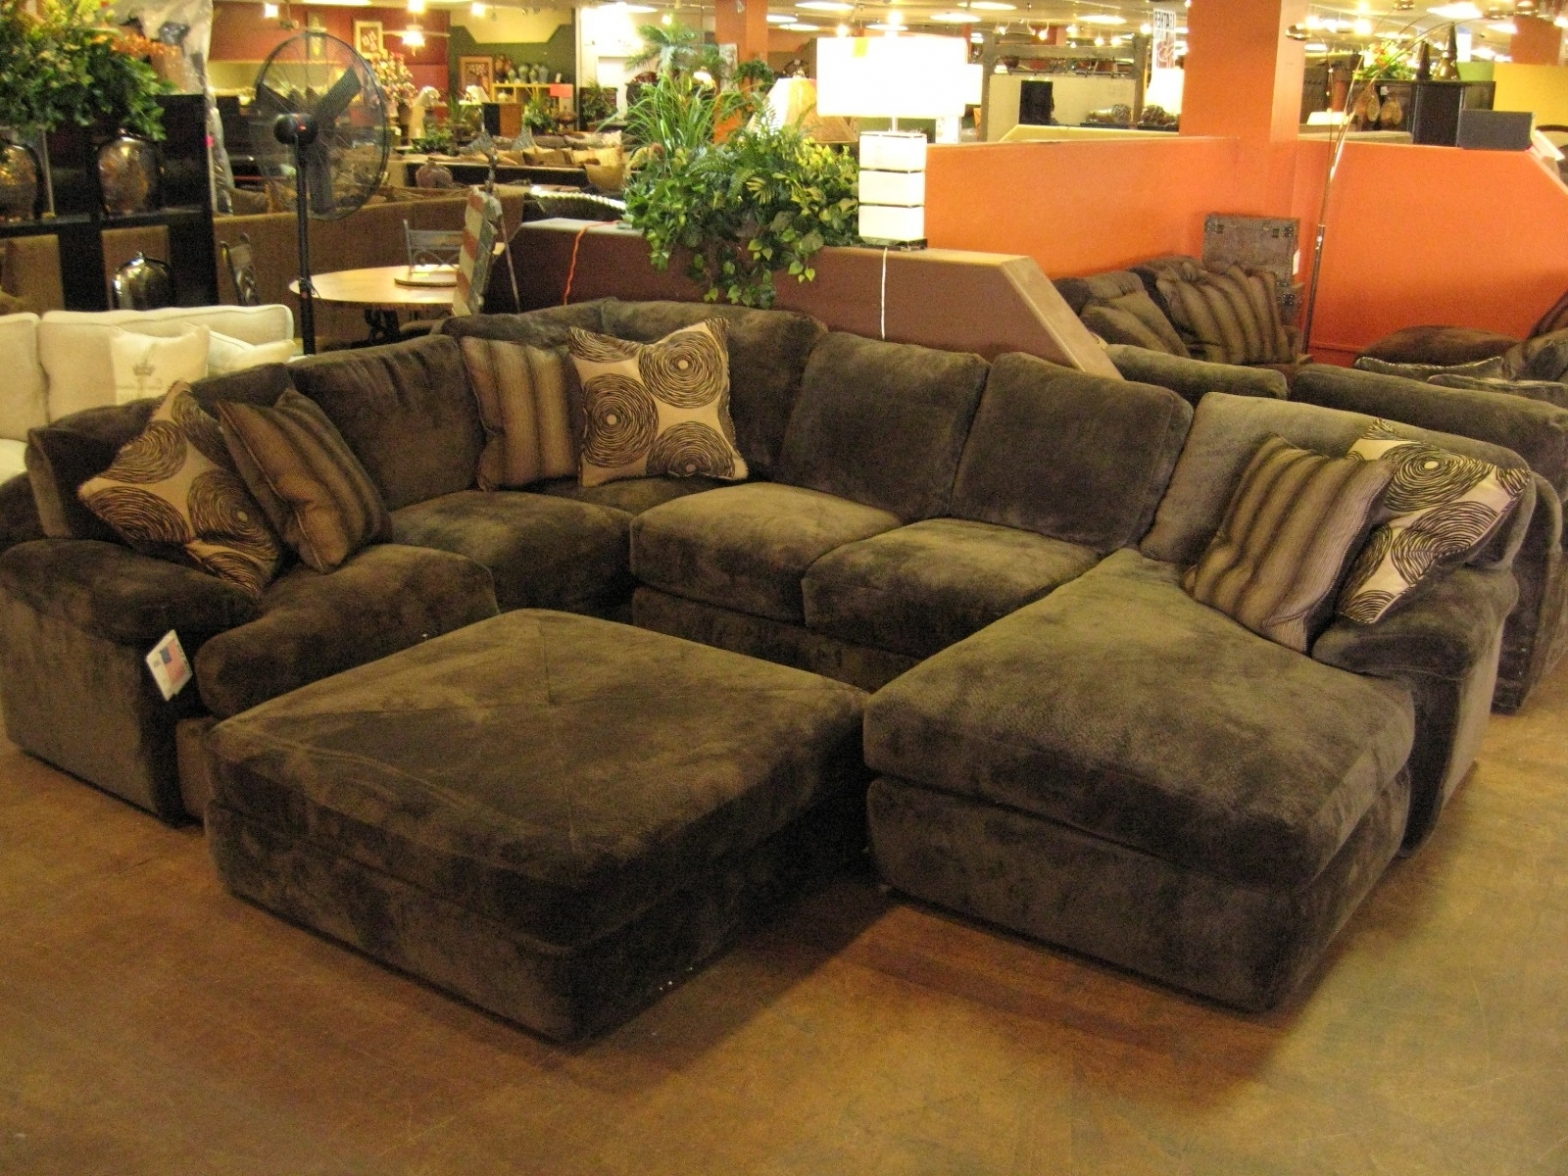 Most Current Sectional Sofas At Amazon Pertaining To Furniture: Awesome Amazon Sectional Sofas 77 On The Brick (View 7 of 15)